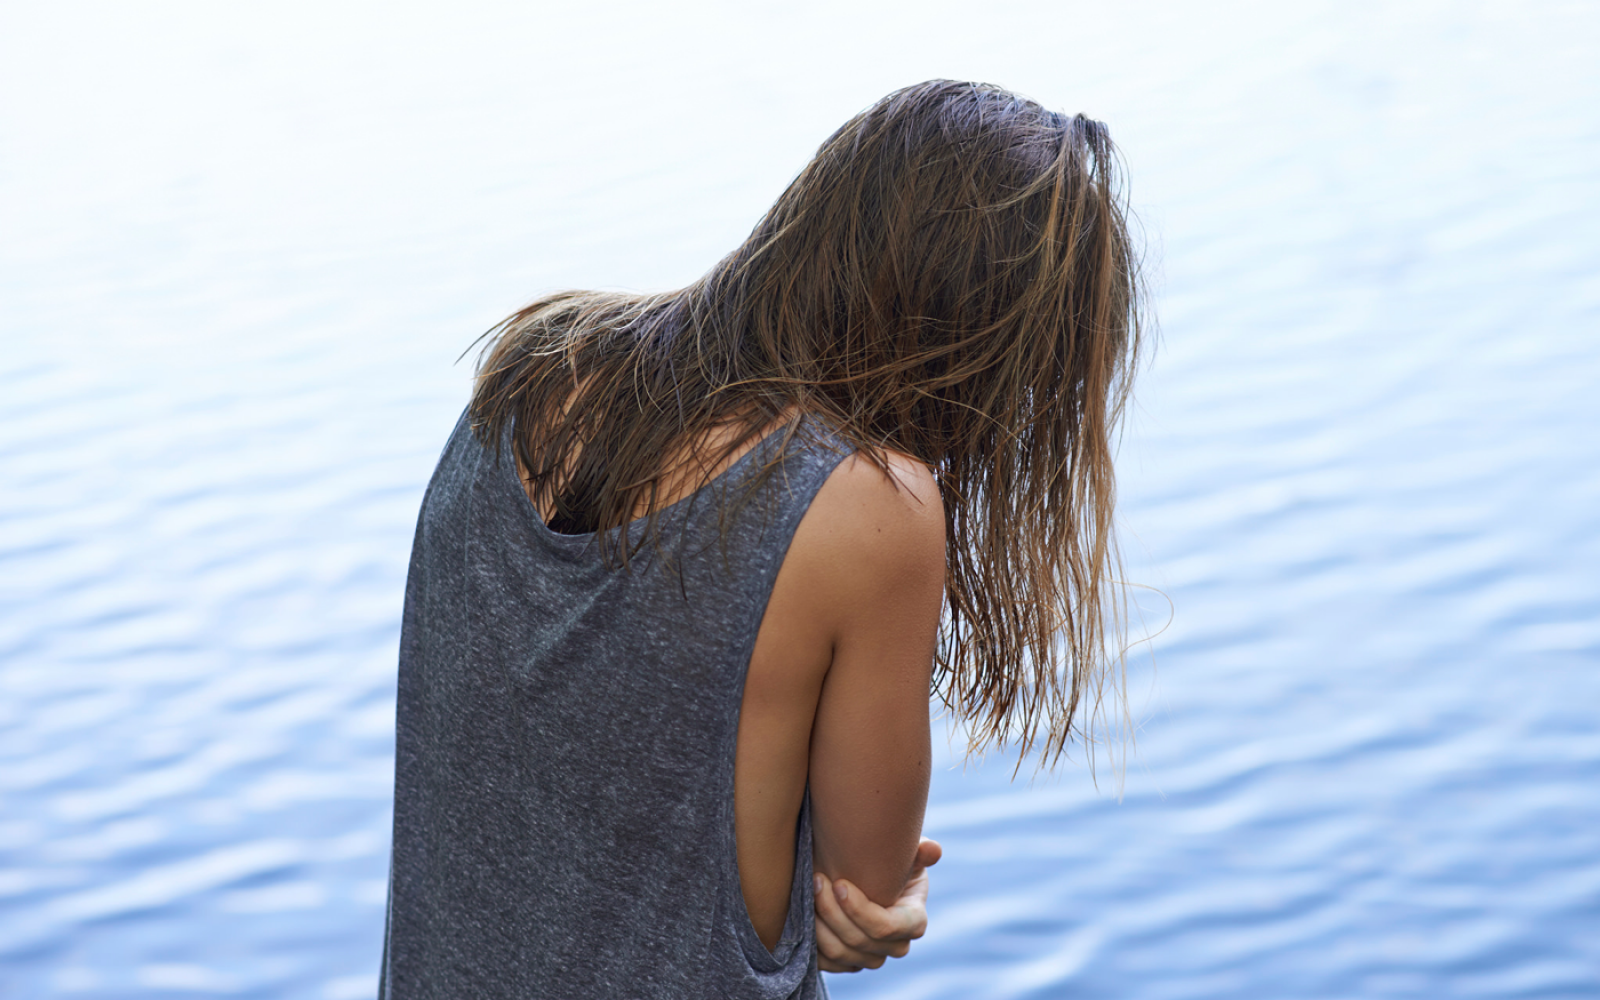 21 Quotes That Help You Learn To Live With Anxiety And Lead a Happier Life